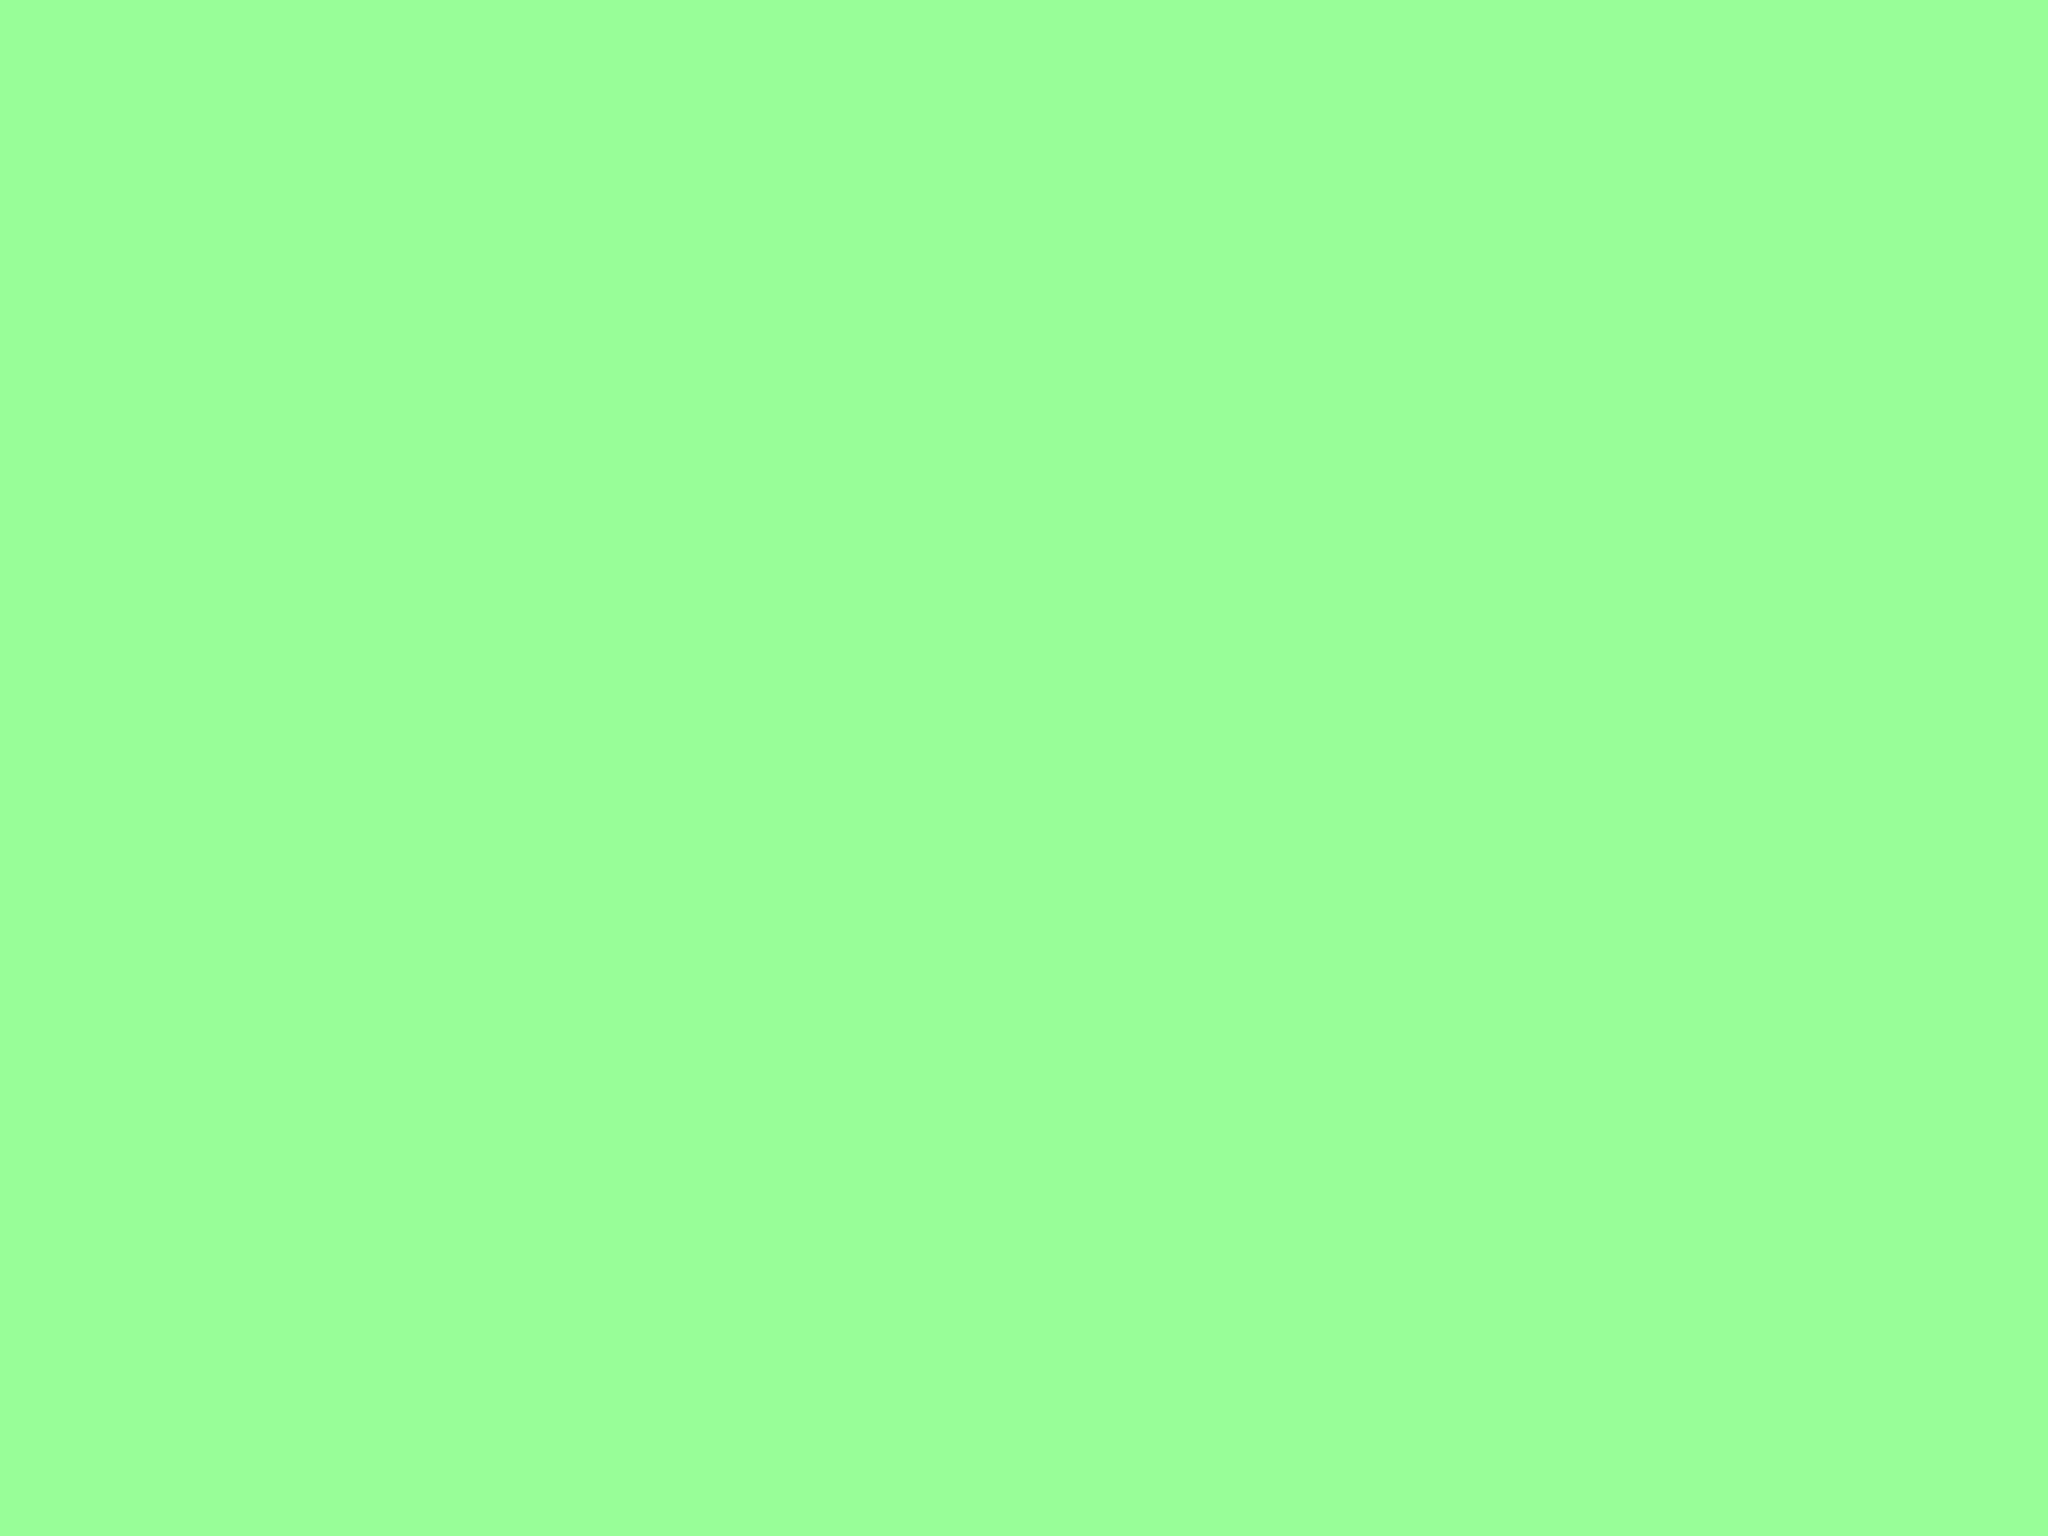 2048x1536 Mint Green Solid Color Background